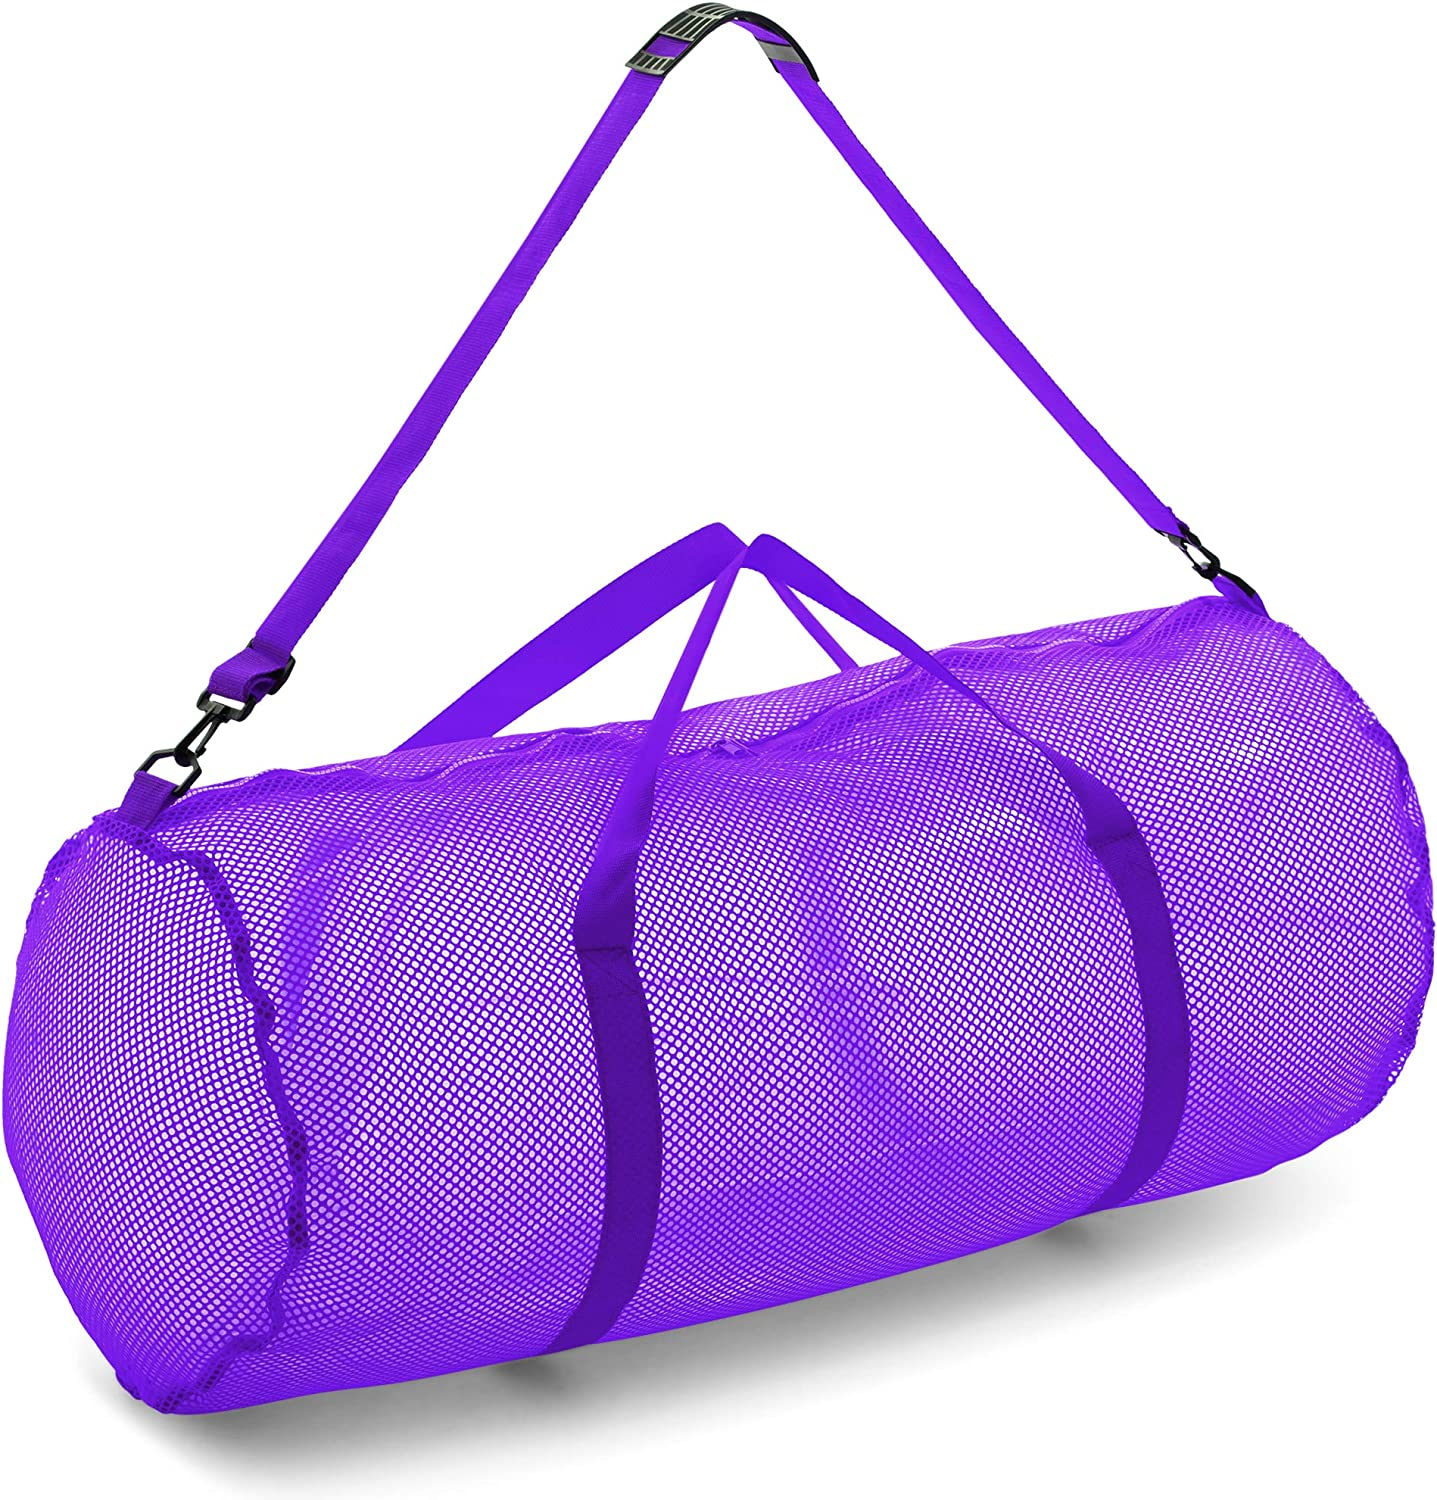 "Champion Sports Mesh Duffle Bag with Zipper and Adjustable Shoulder Strap, 15"" x 36"" - Multipurpose, Oversized Gym Bag for Equipment, Sports Gear, Laundry - Breathable Mesh Scuba and Travel Bag"